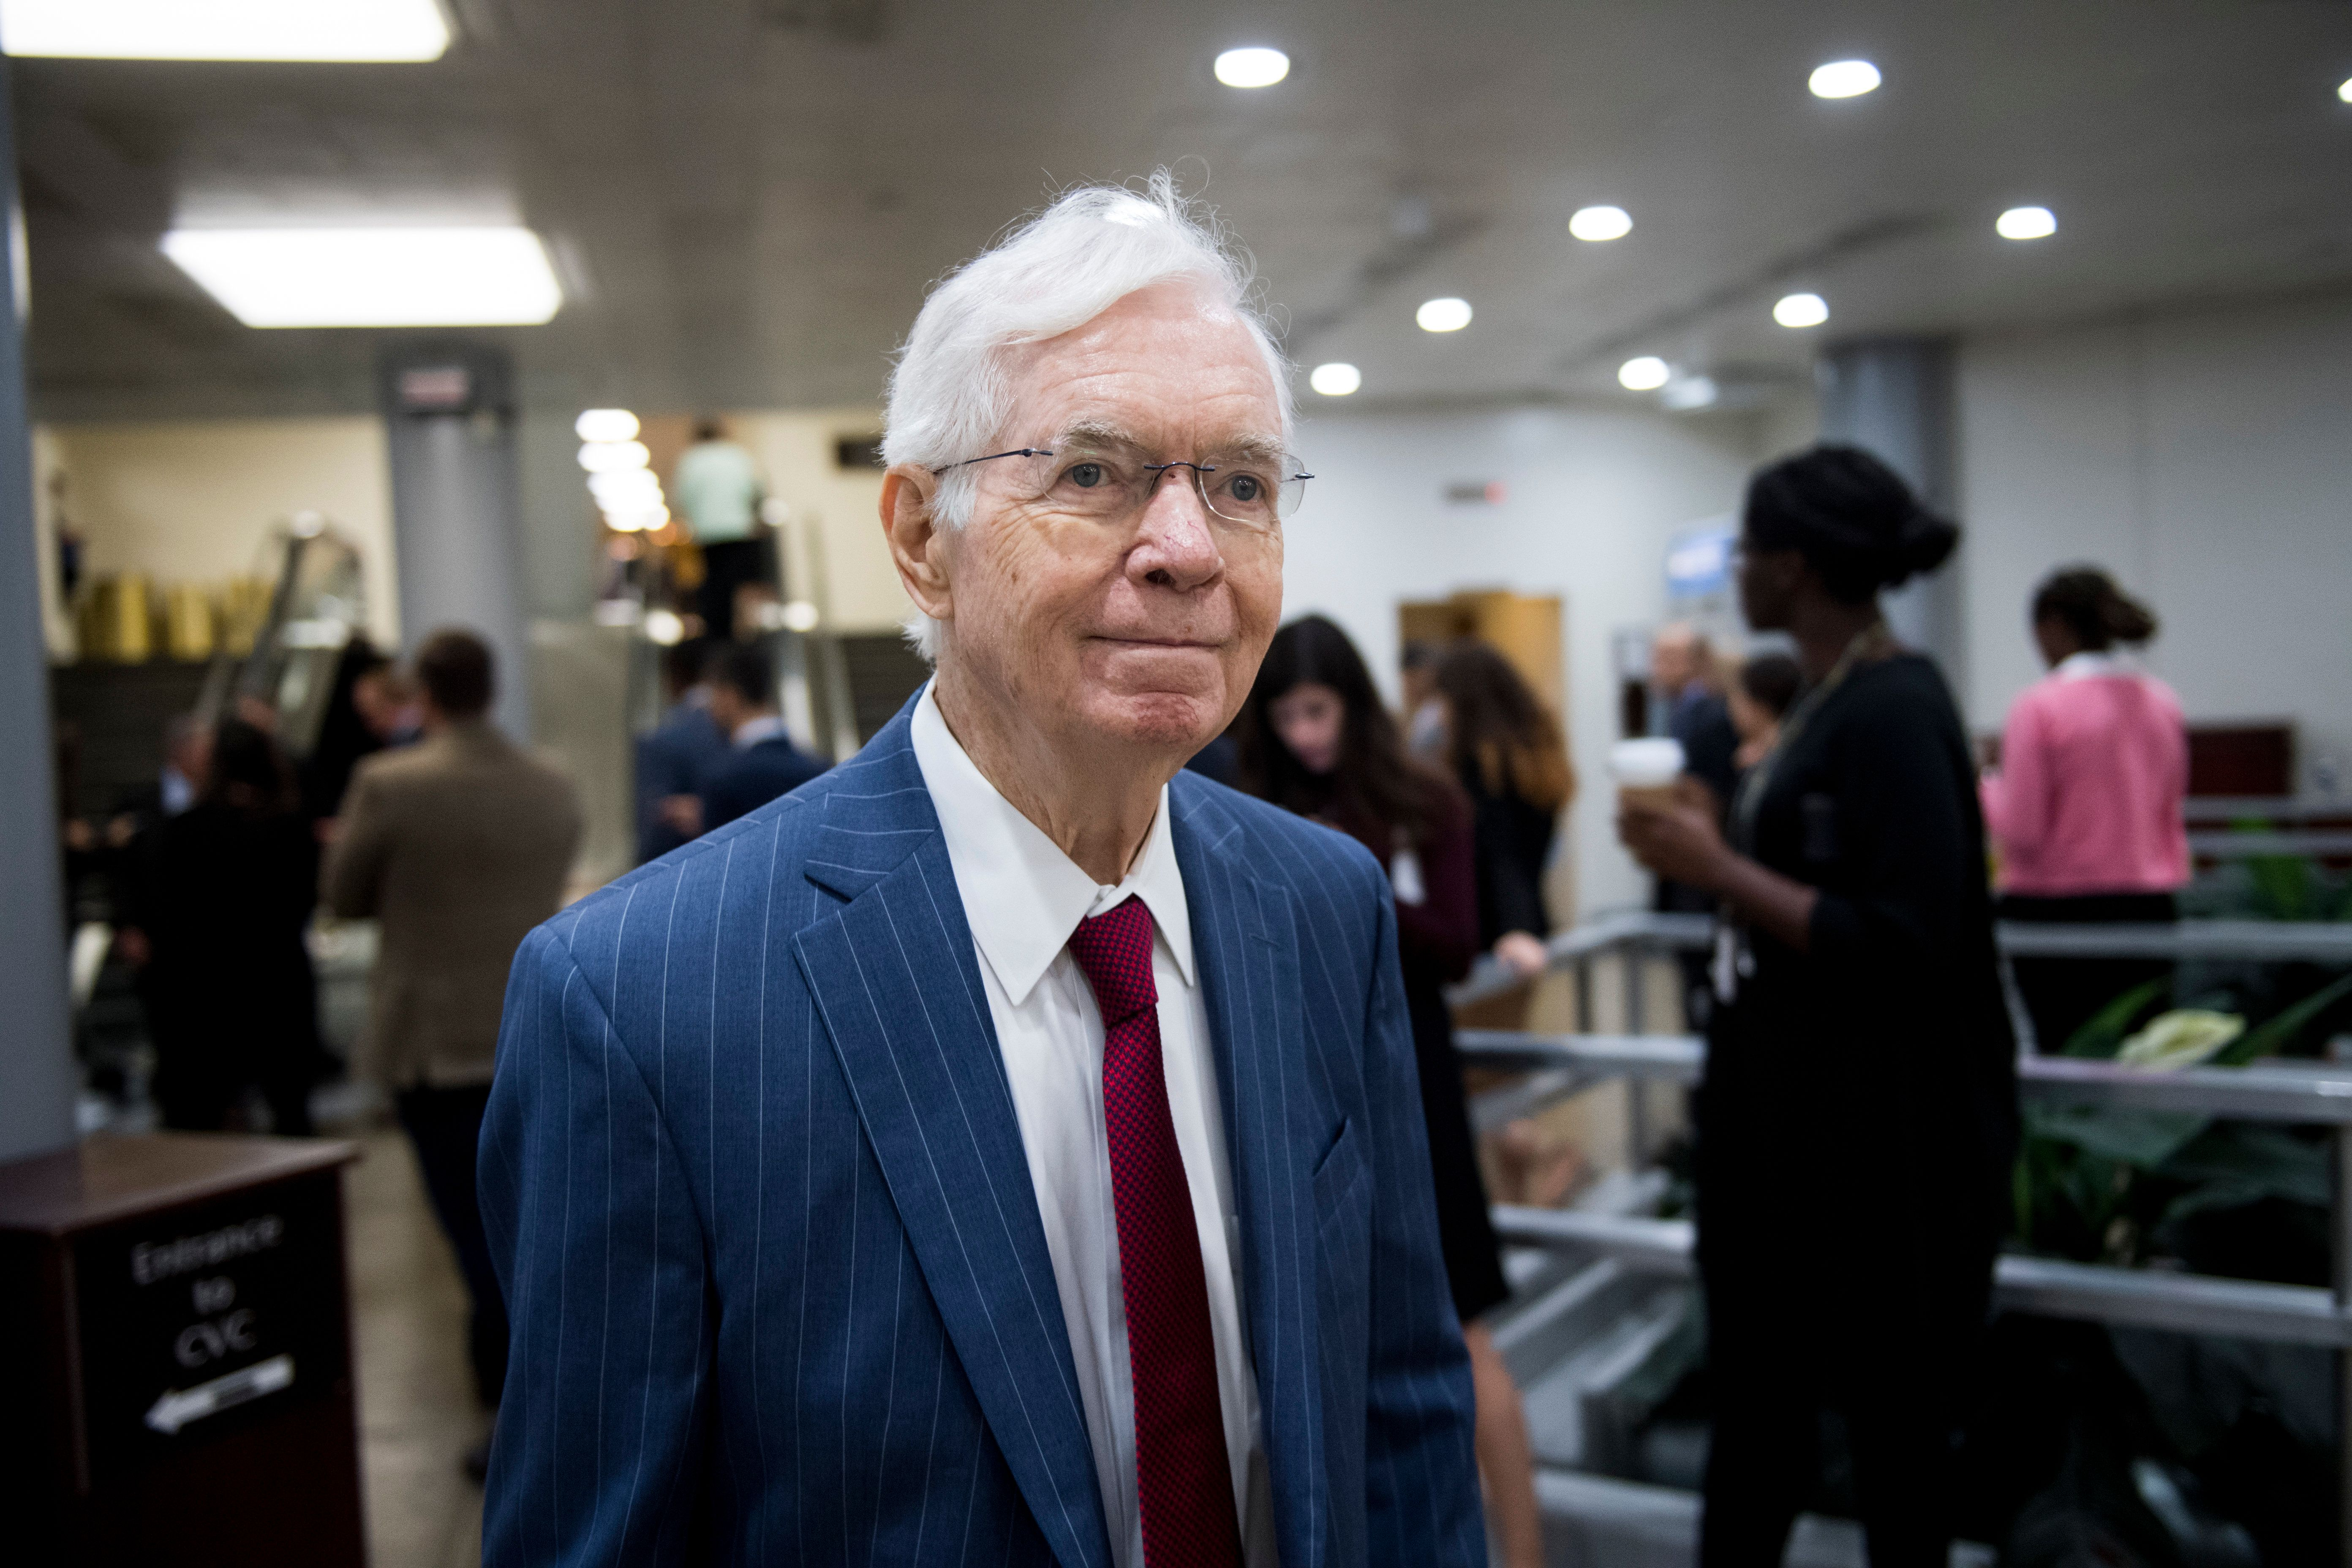 UNITED STATES - OCTOBER 24: Sen. Thad Cochran, R-Miss., leaves the Senate Republicans' policy lunch with in the Capitol on Tuesday, Oct. 24, 2017. (Photo By Bill Clark/CQ Roll Call)